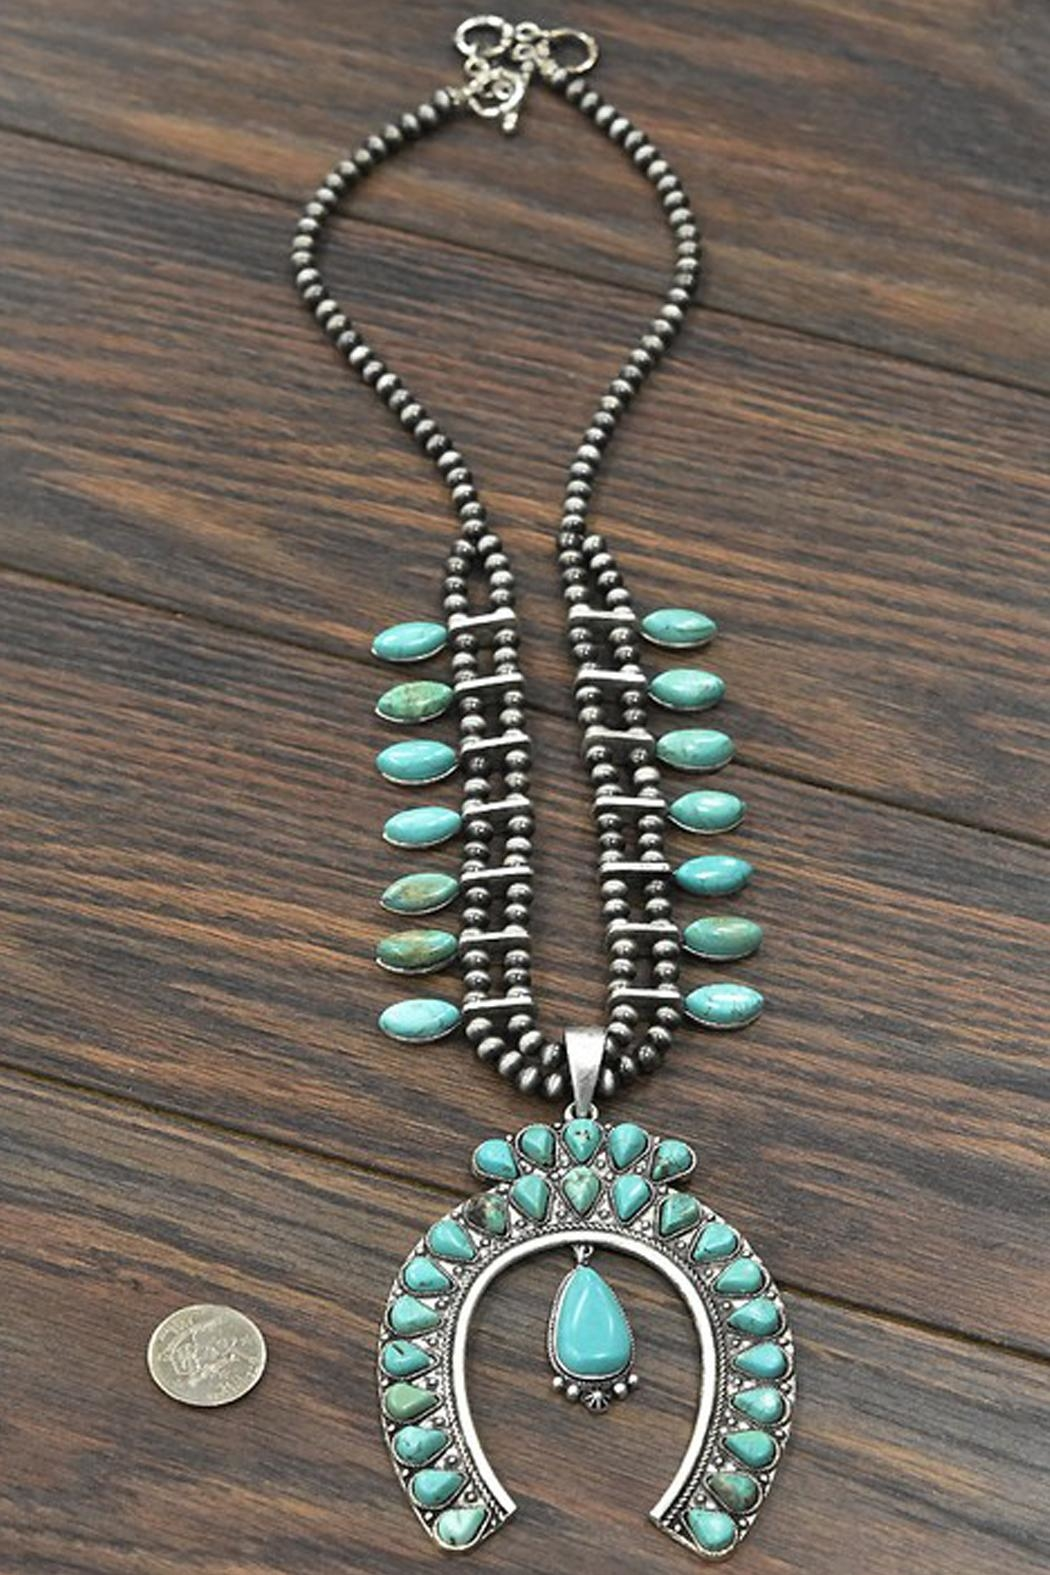 JChronicles Full-Squash-Blossom Natural-Turquoise Necklace - Side Cropped Image